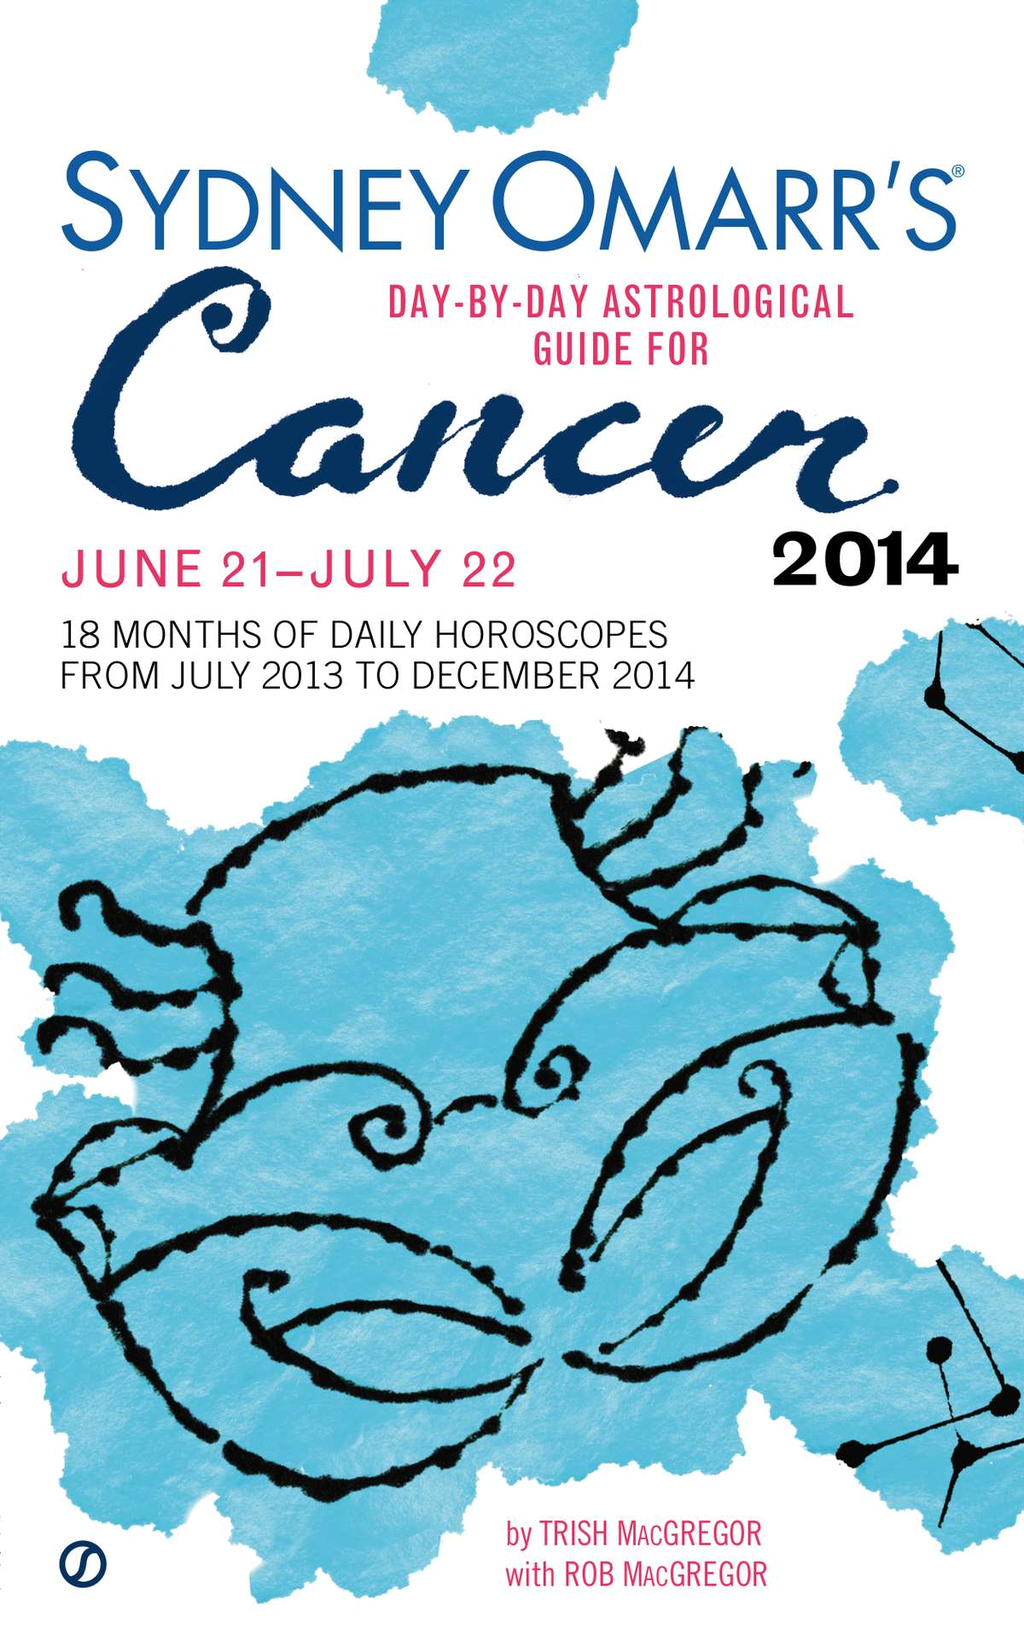 Sydney Omarr's Day-By-Day Astrological Guide for the Year 2014: Cancer